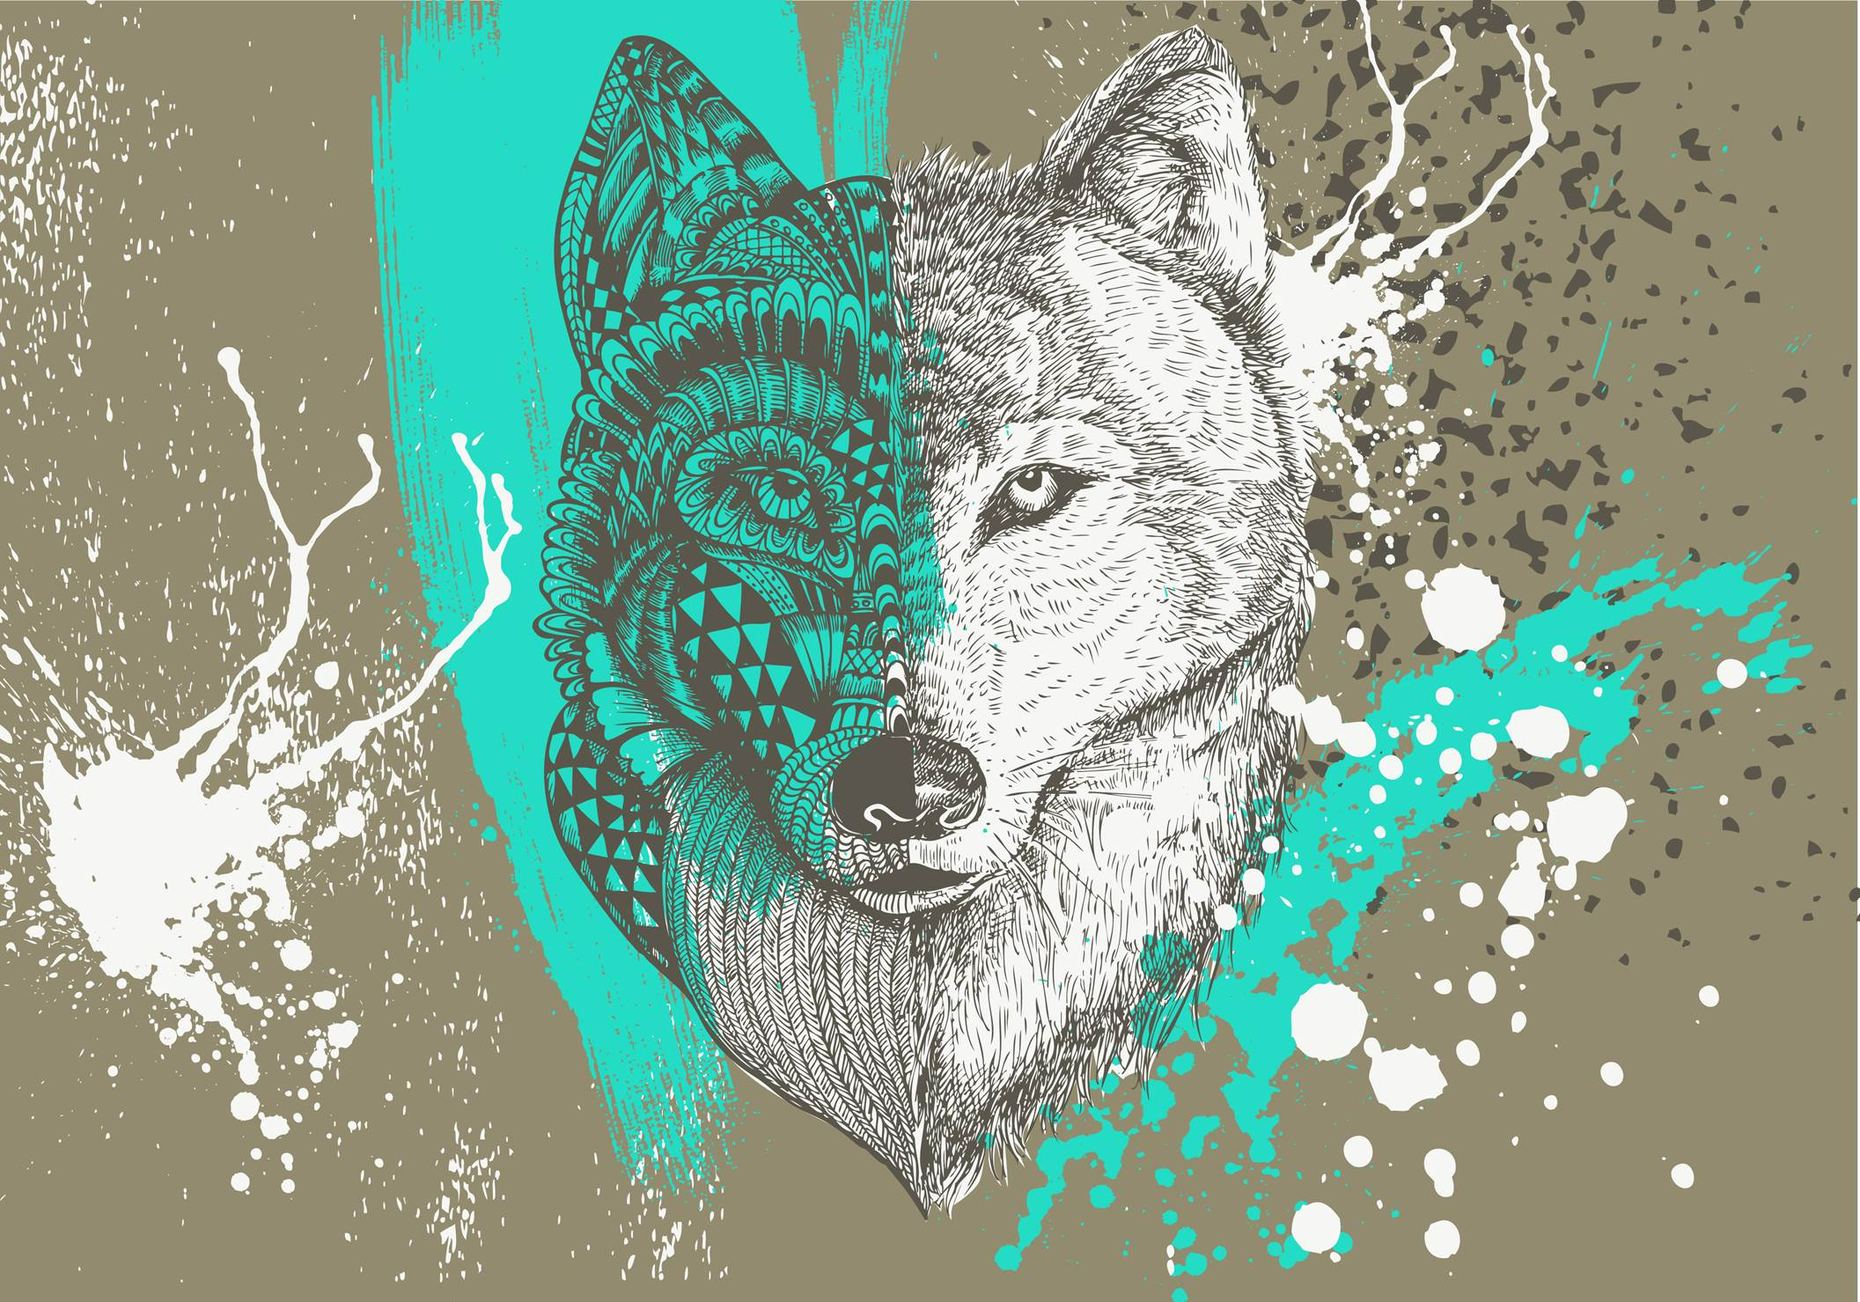 WQXR Family Concert: Prokofiev's Peter and the Wolf